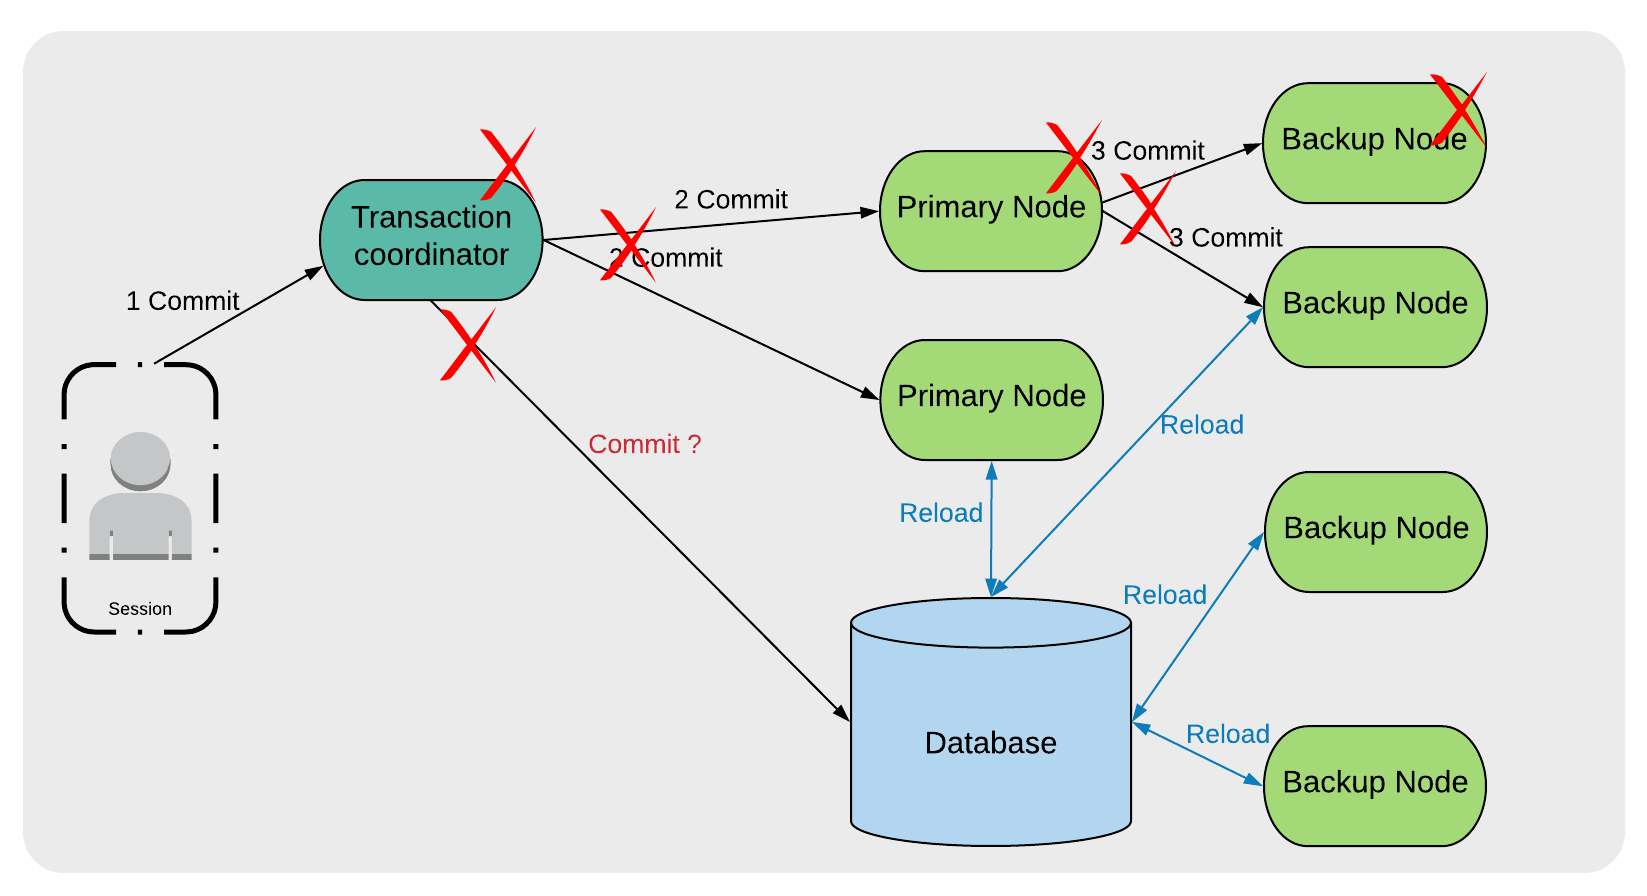 Figure 2. 2-Phase Commit Recovery with Database